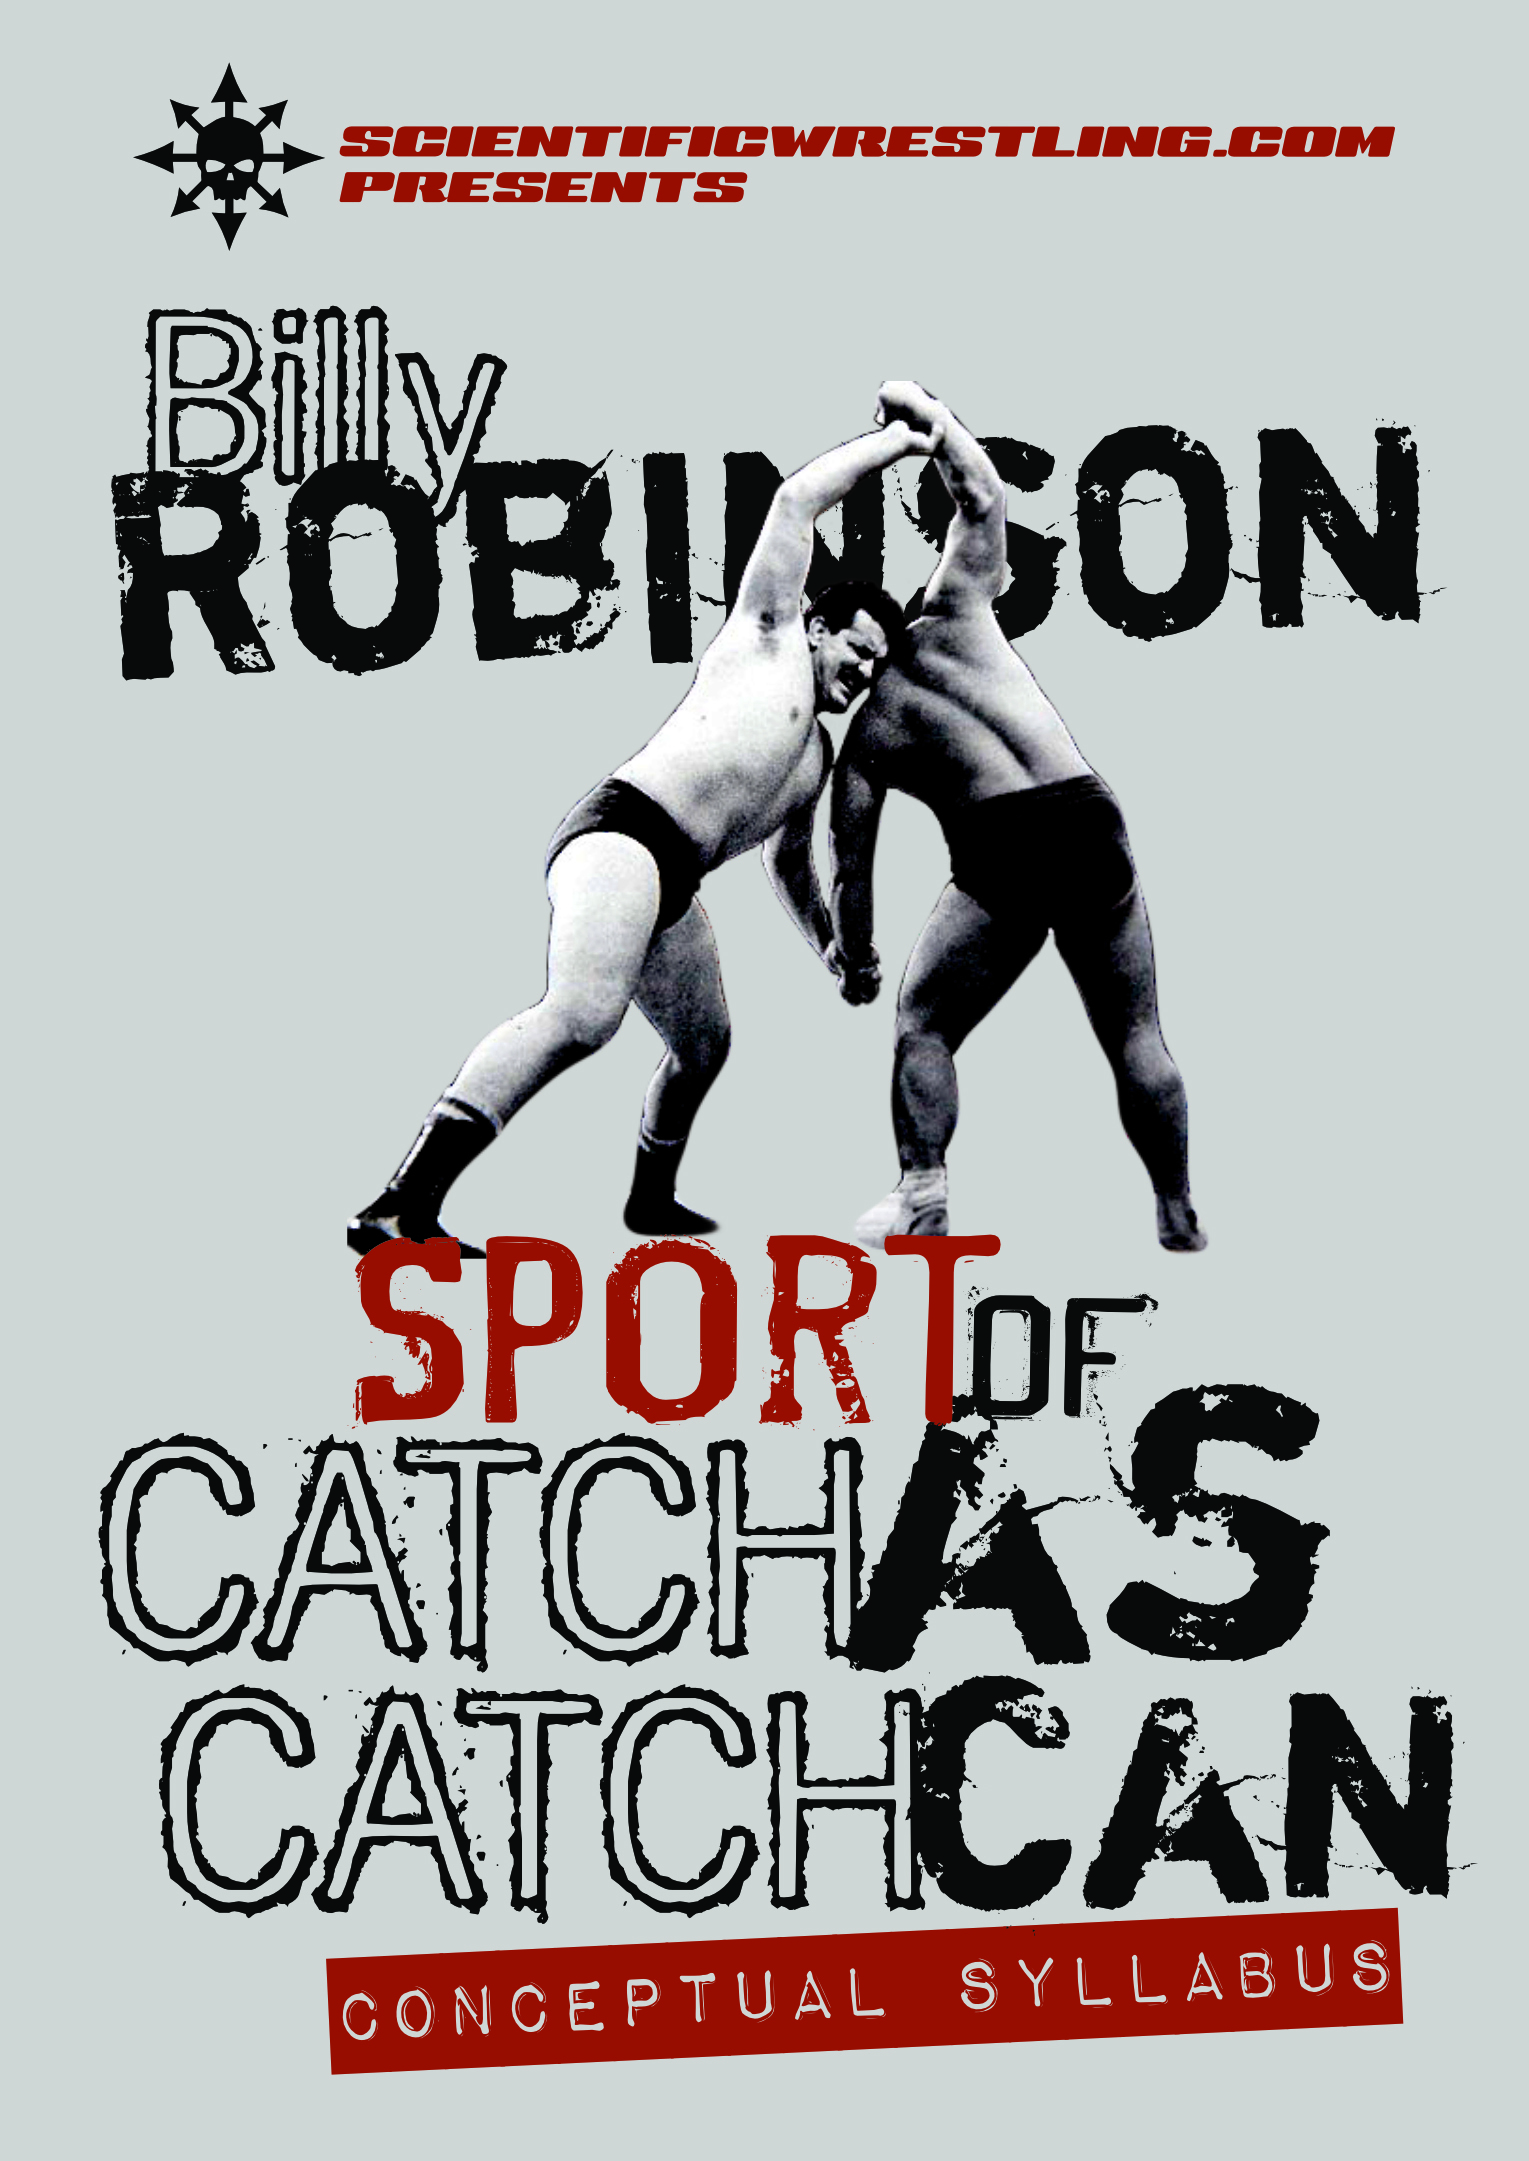 The Sport of Catch-As-Catch-Can Conceptual Syllabus starring Billy Robinson